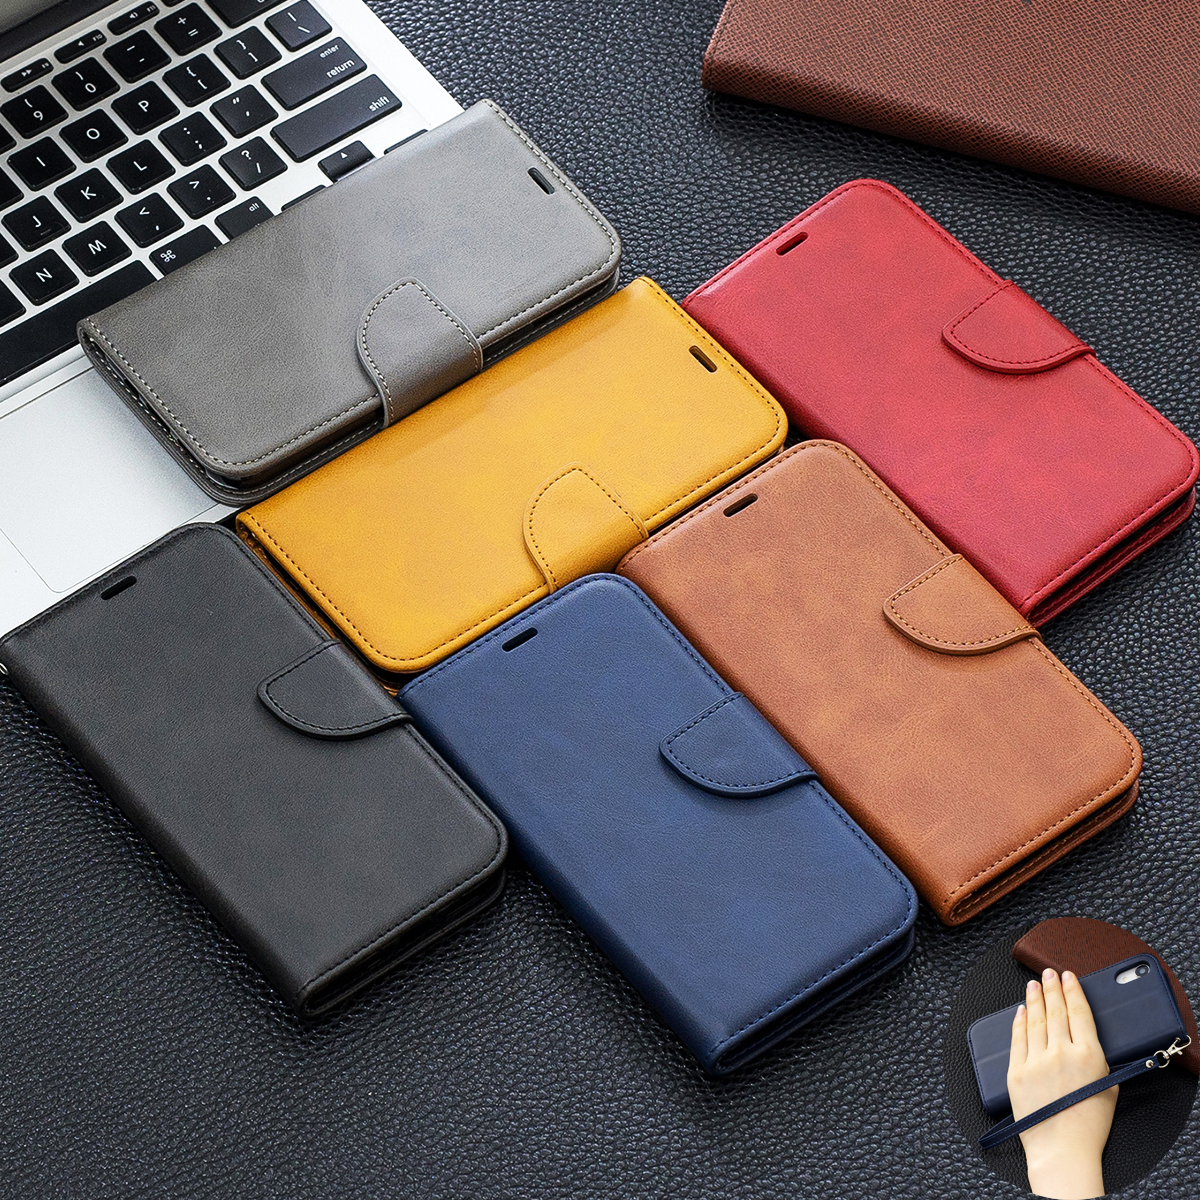 <font><b>Flip</b></font> Wallet <font><b>Leather</b></font> <font><b>Case</b></font> on sfor Fundas <font><b>Nokia</b></font> 3 5 6 1 Plus <font><b>Case</b></font> For Coque <font><b>Nokia</b></font> 2.1 2.2 3.1 3.2 4.2 5.1 <font><b>6.1</b></font> 7.1 Phone <font><b>Case</b></font> Cover image